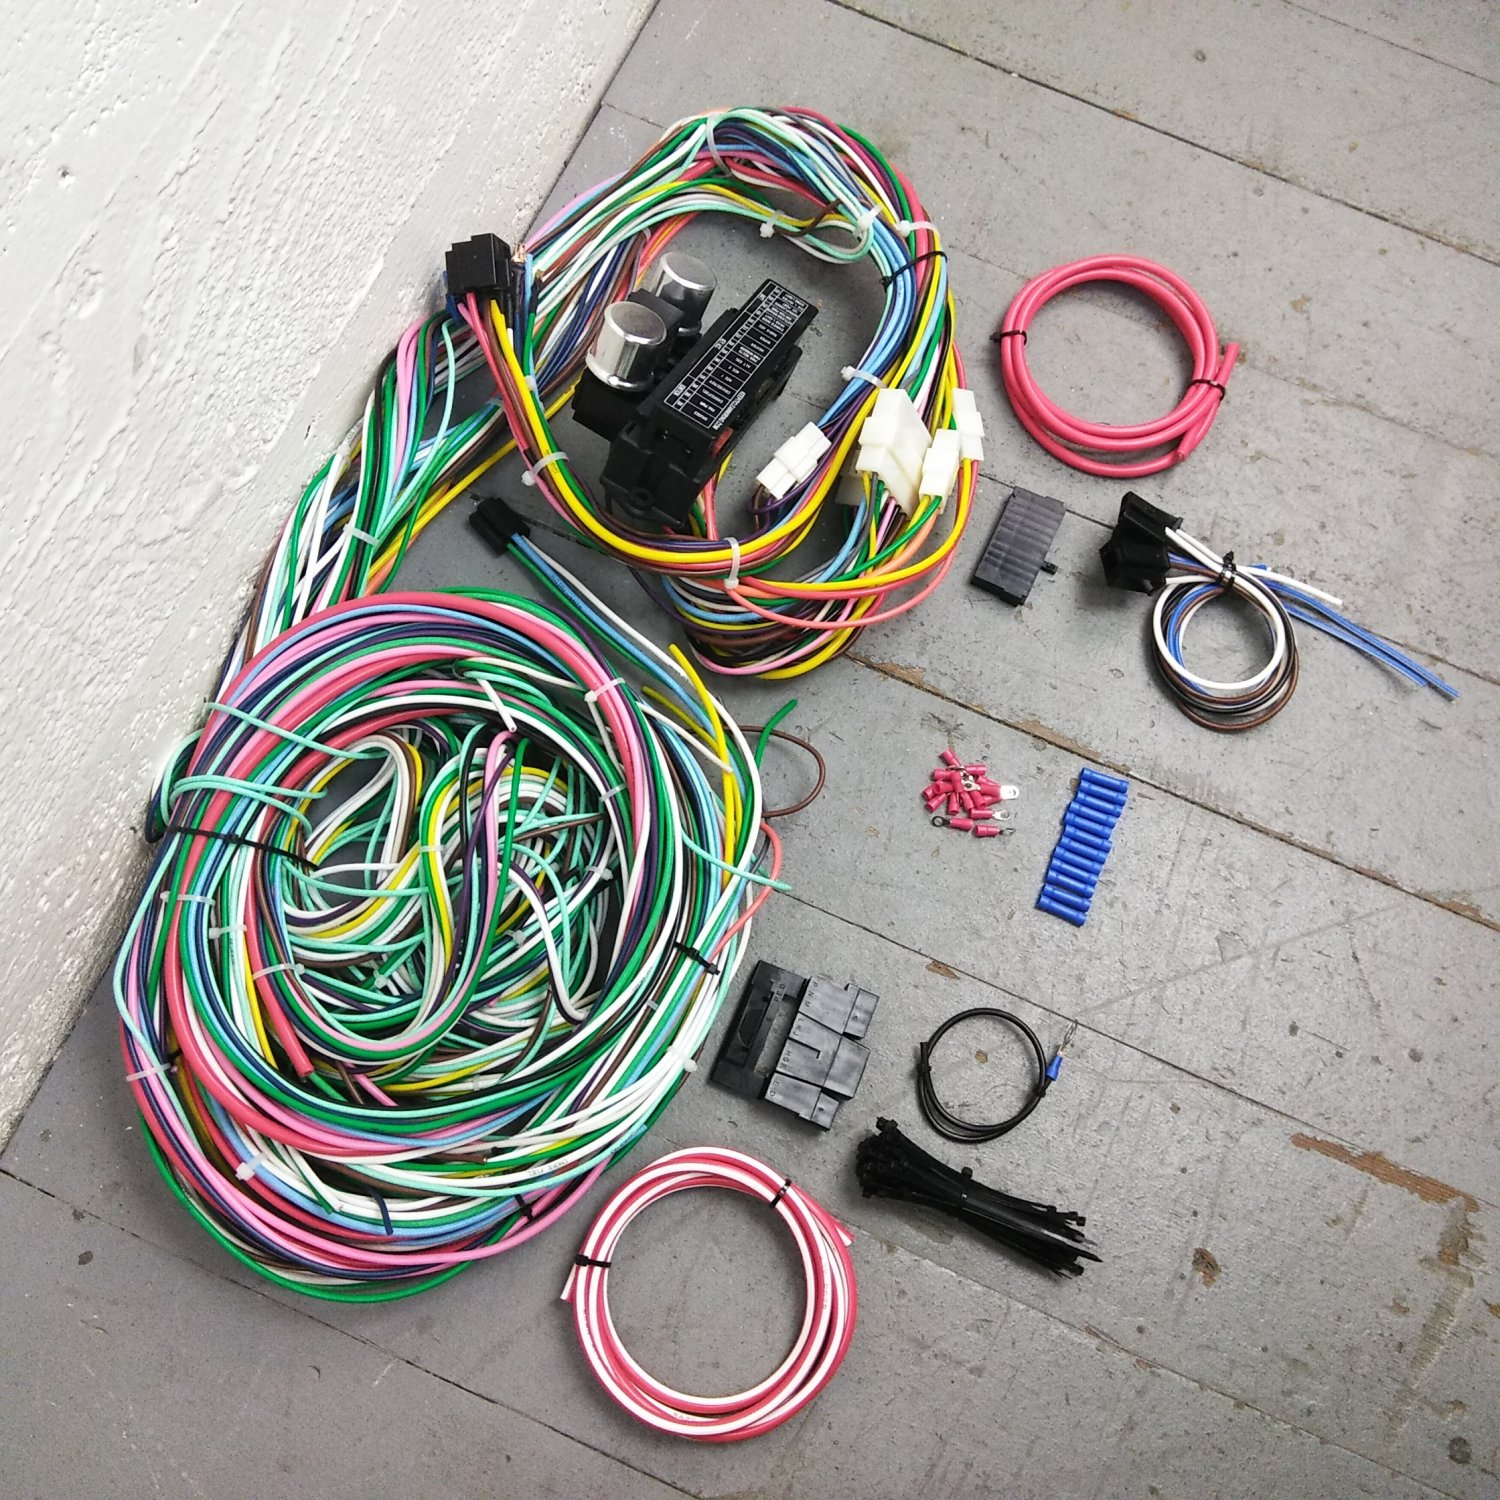 hight resolution of 1974 dodge wiring wiring library1970 1974 dodge challenger wire harness upgrade kit fits painless complete new